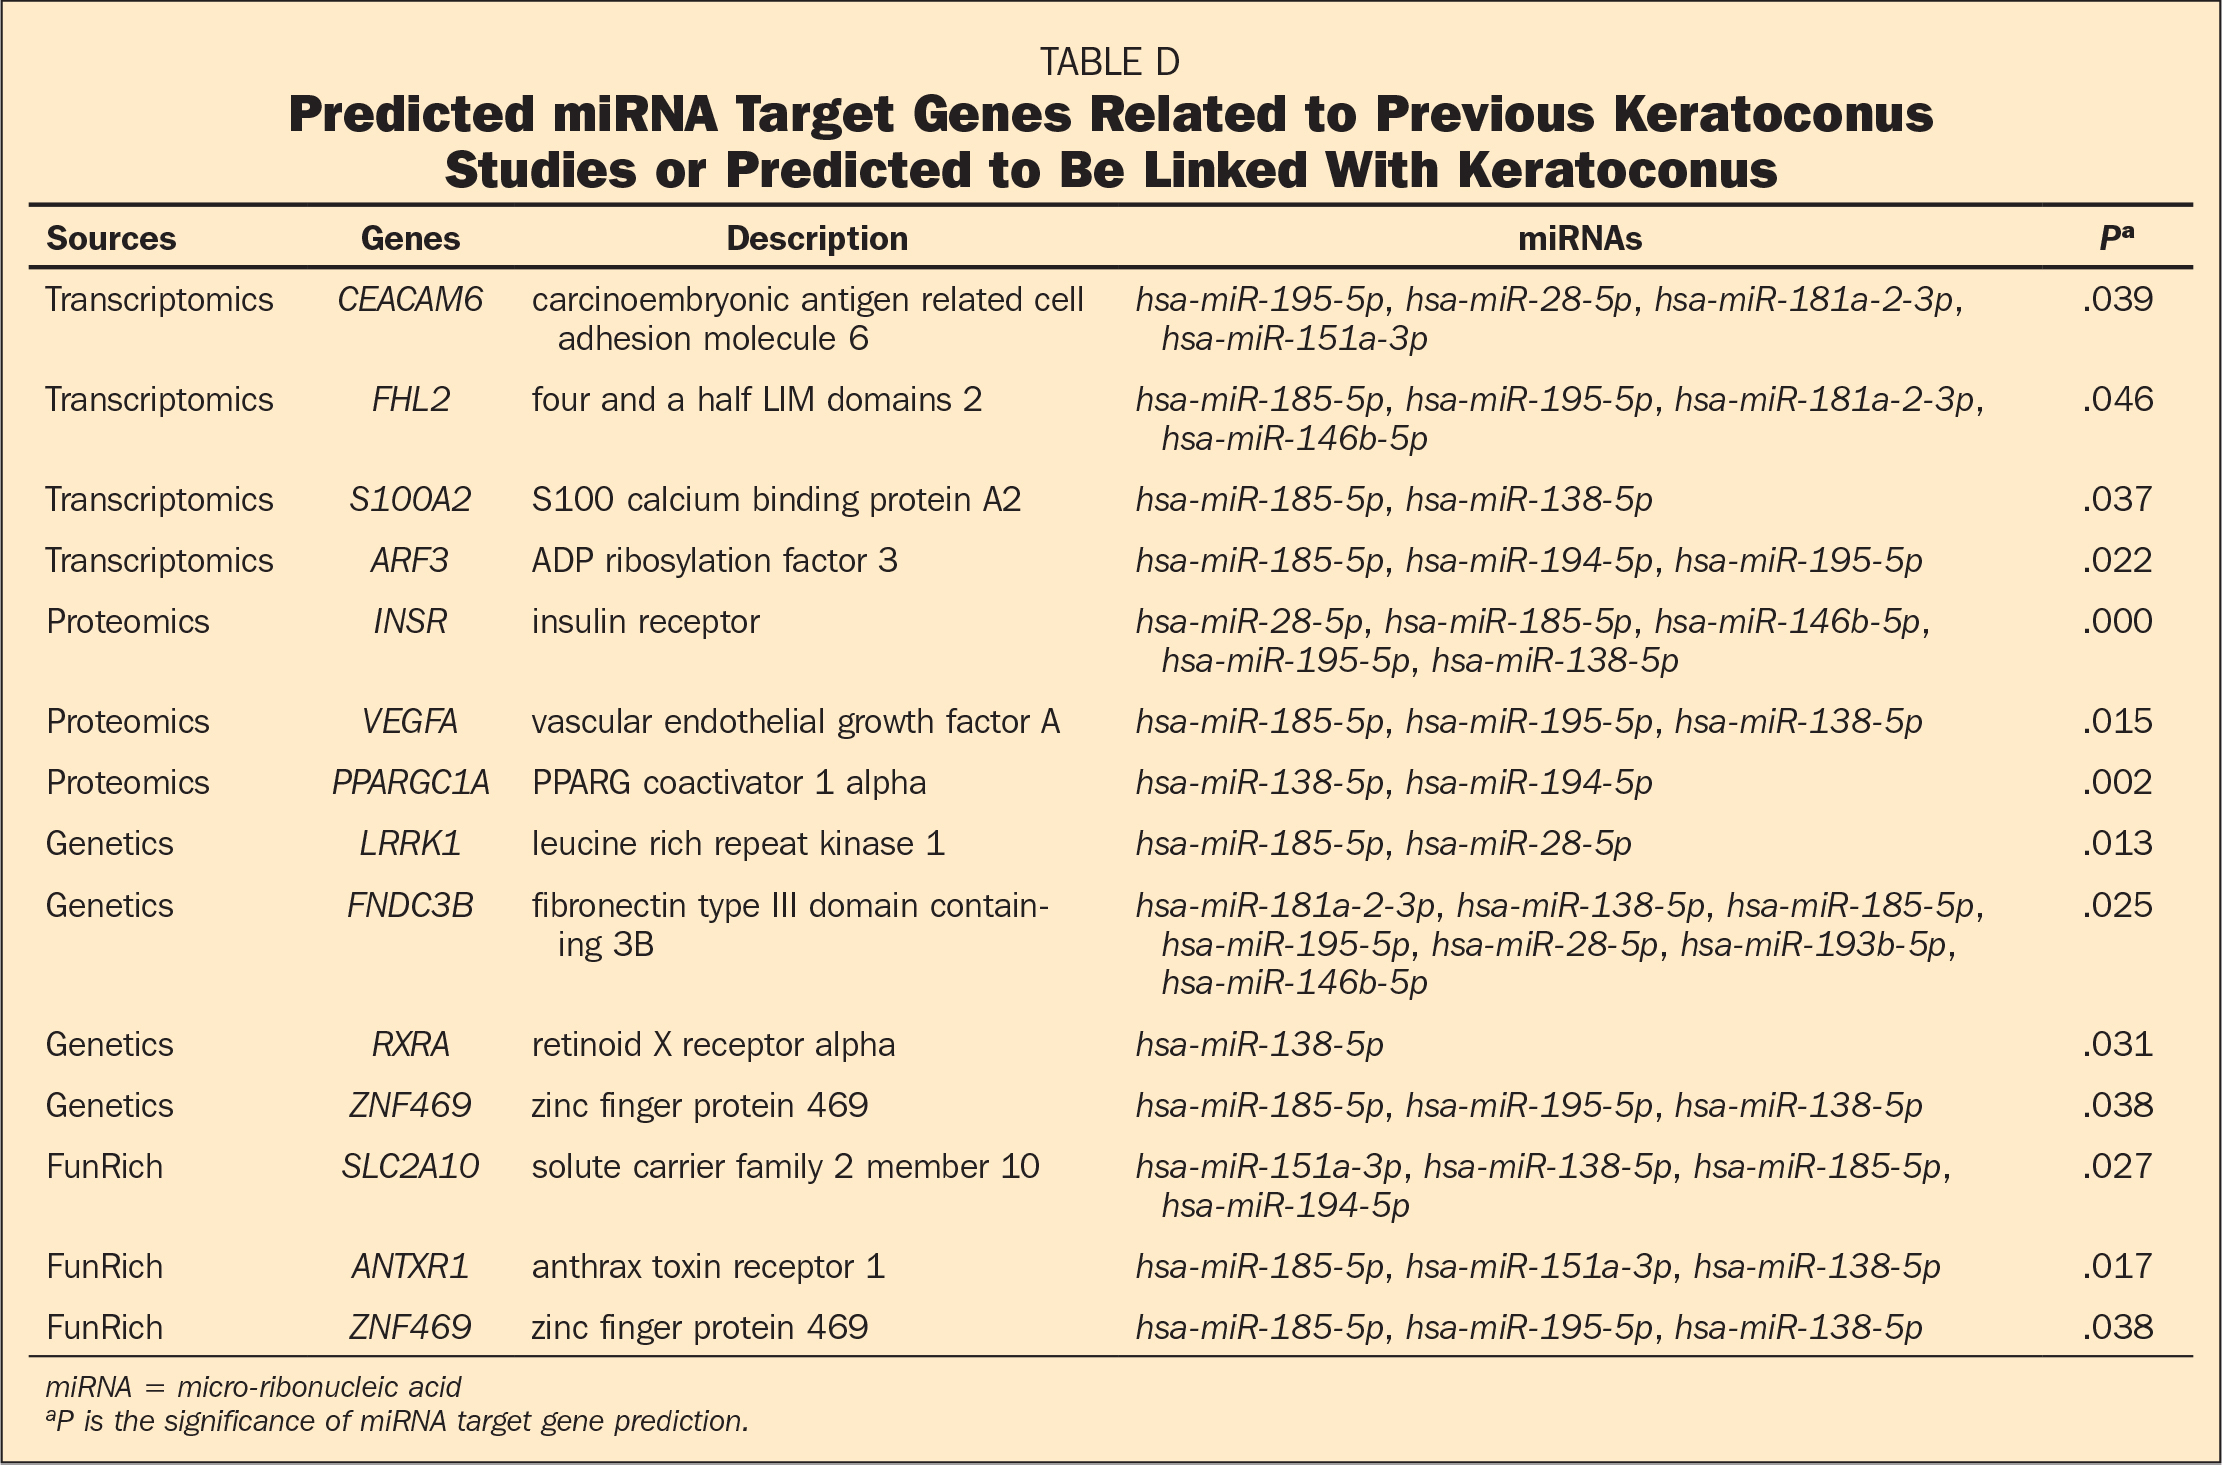 Predicted miRNA Target Genes Related to Previous Keratoconus Studies or Predicted to Be Linked With Keratoconus